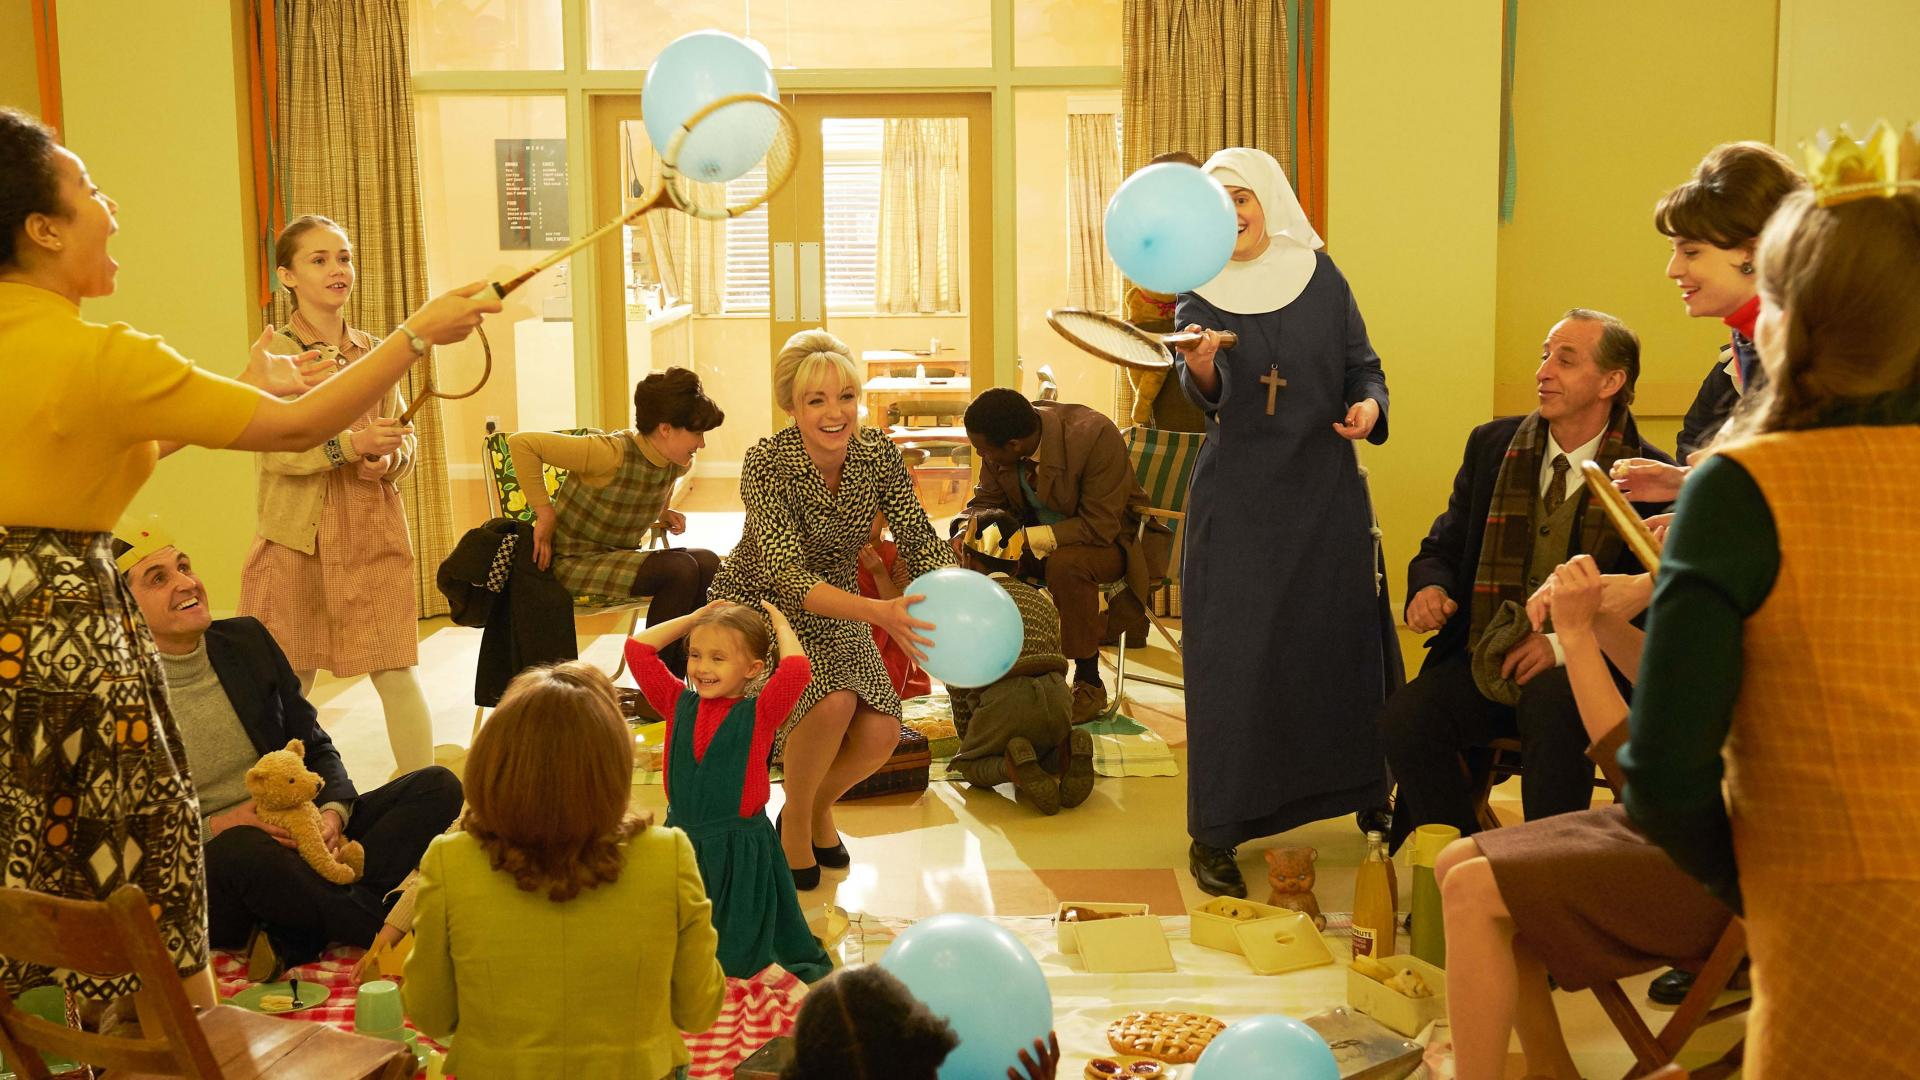 Call the Midwife' Recap: Season 8, Episode 1 | Telly Visions